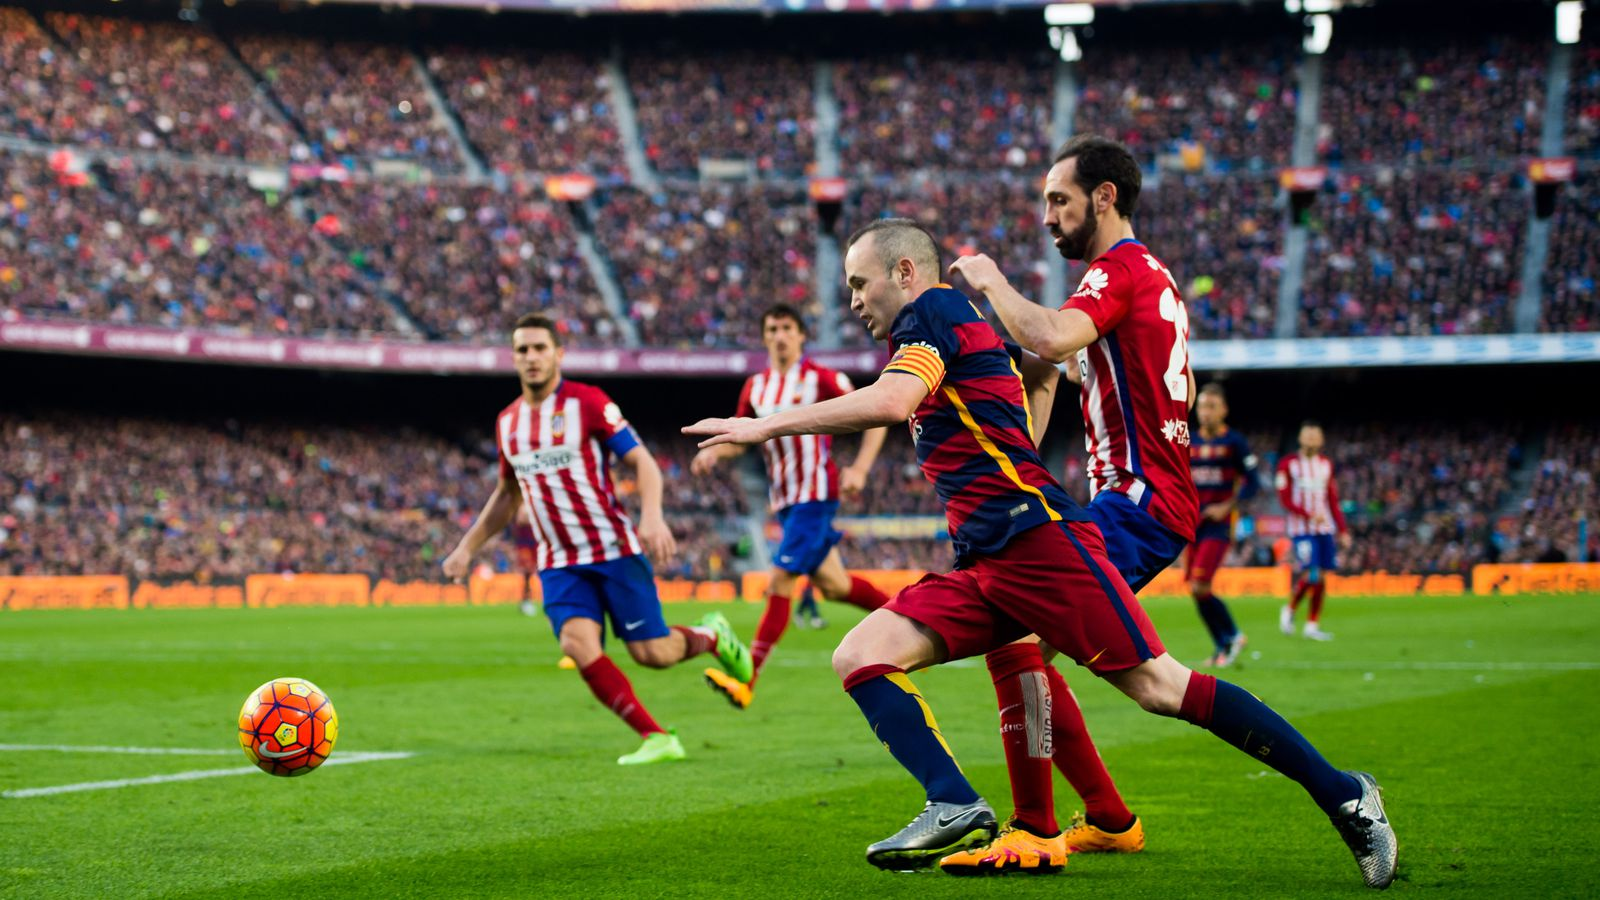 It's Barca's first trip to Atletico's new stadim